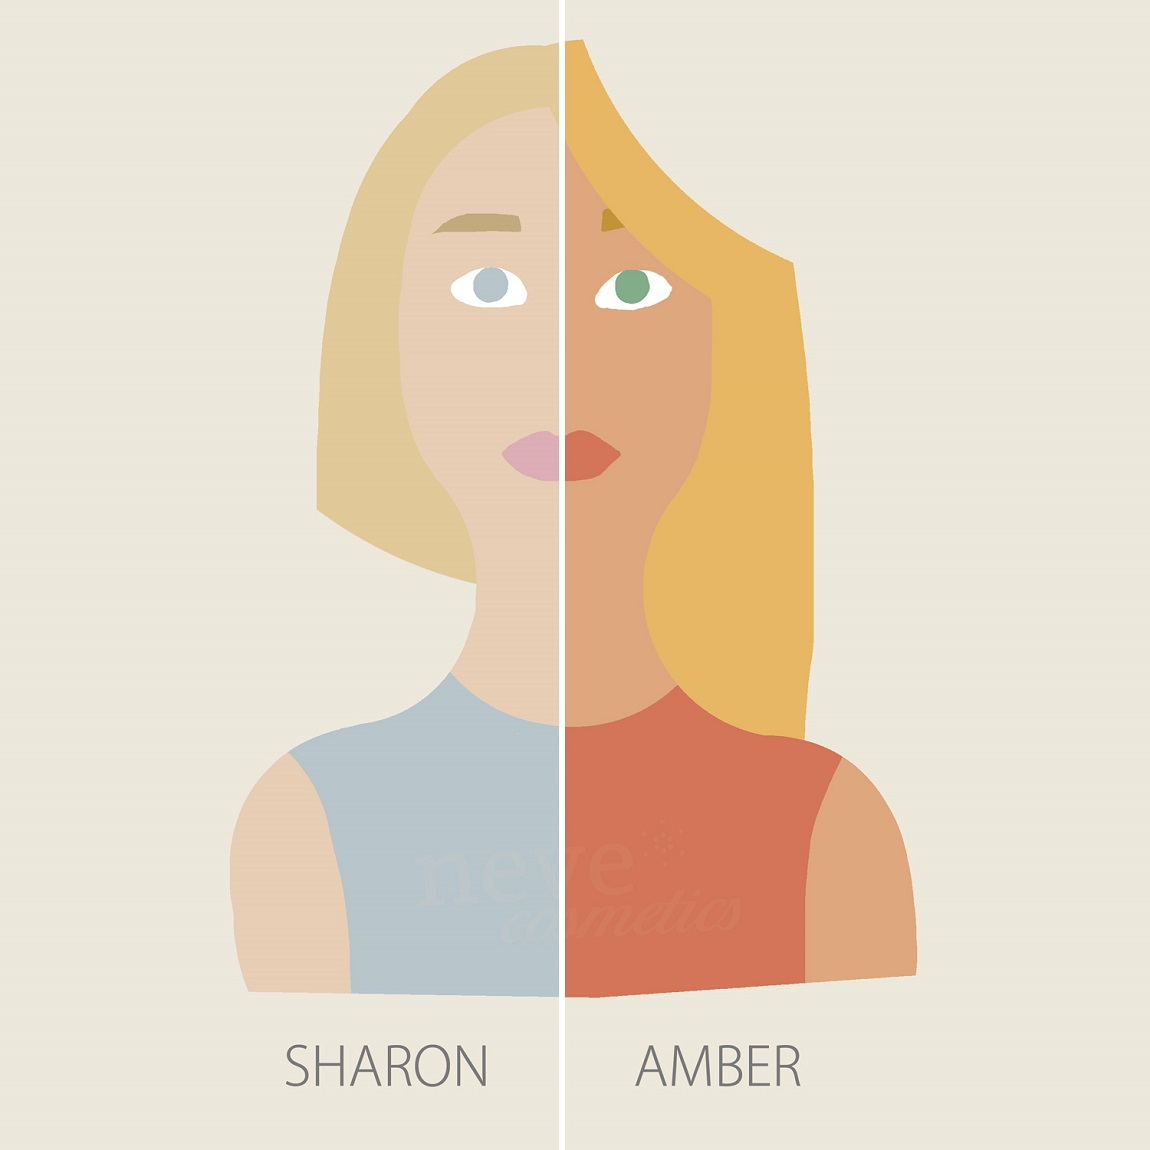 The temperature in armocromia: Sharon Stone and Amber Heard